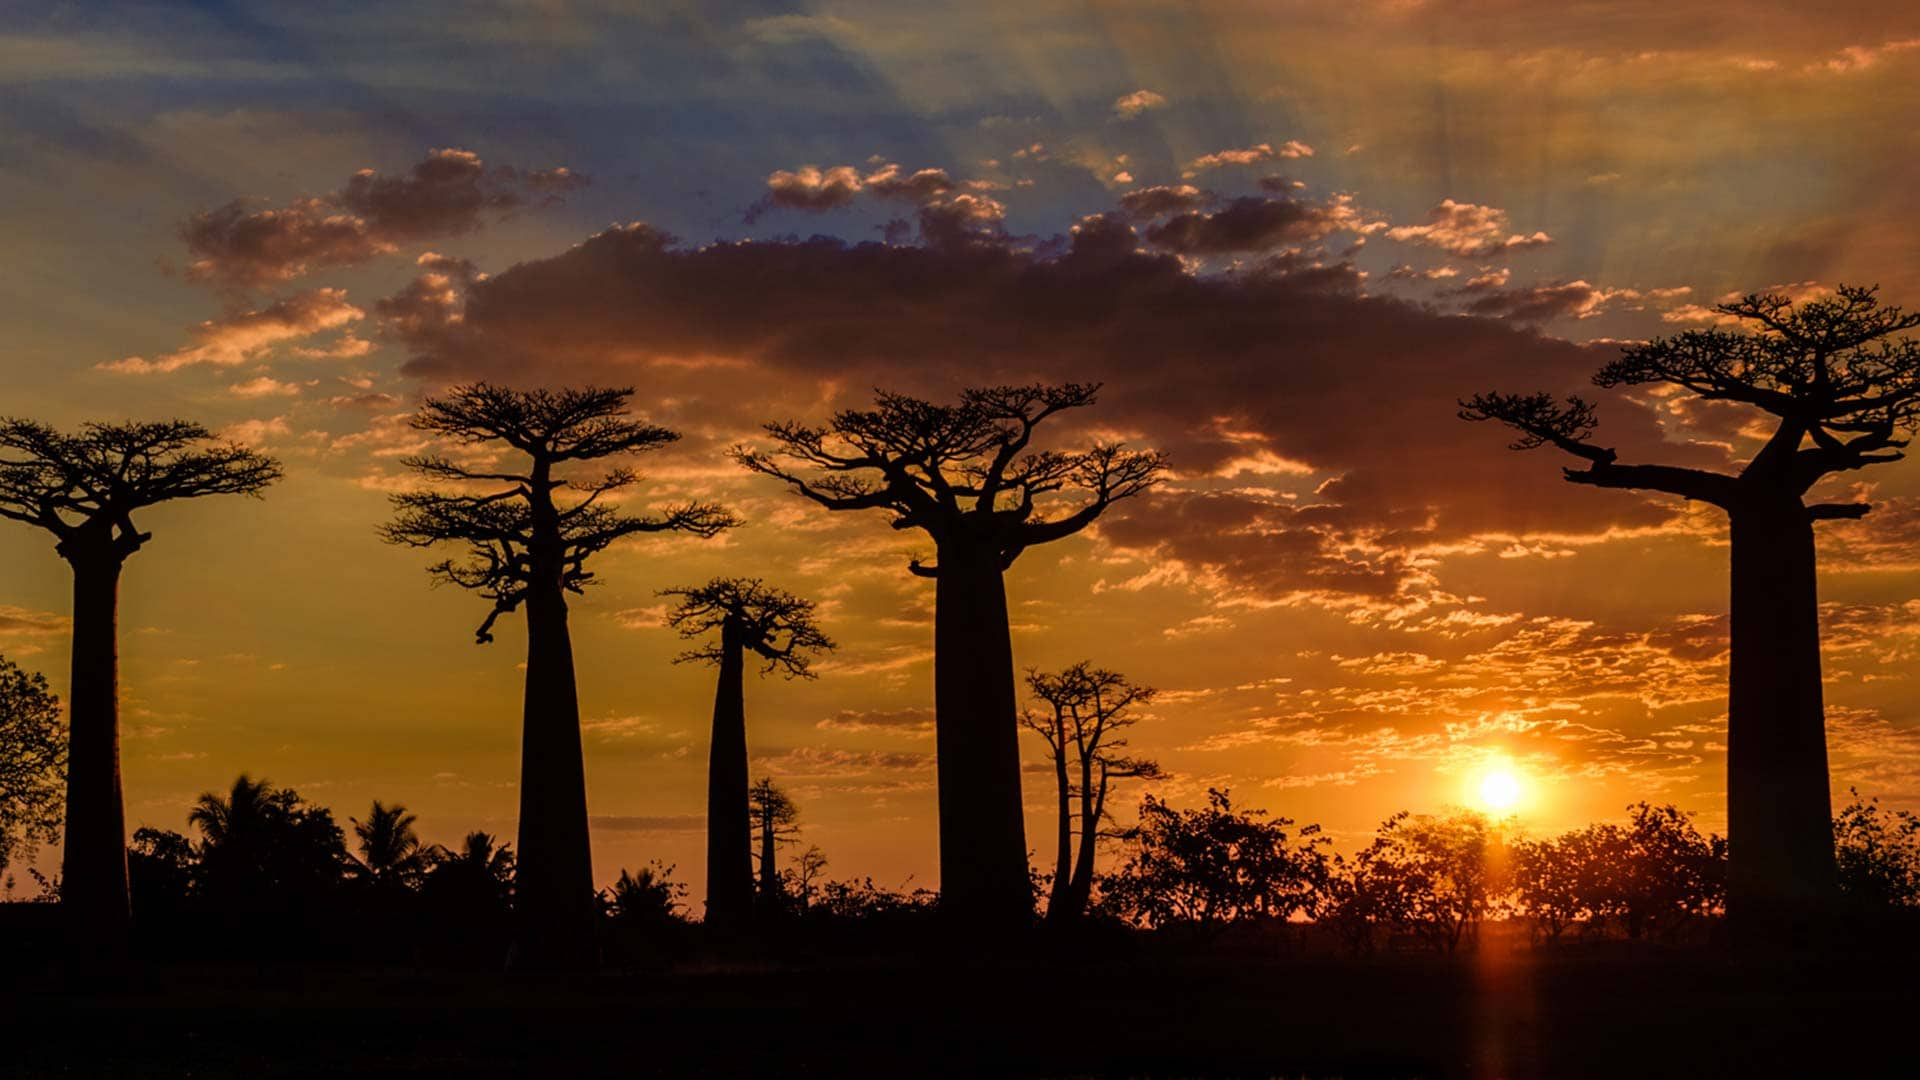 Avenue of the Baobab Trees at Sunset